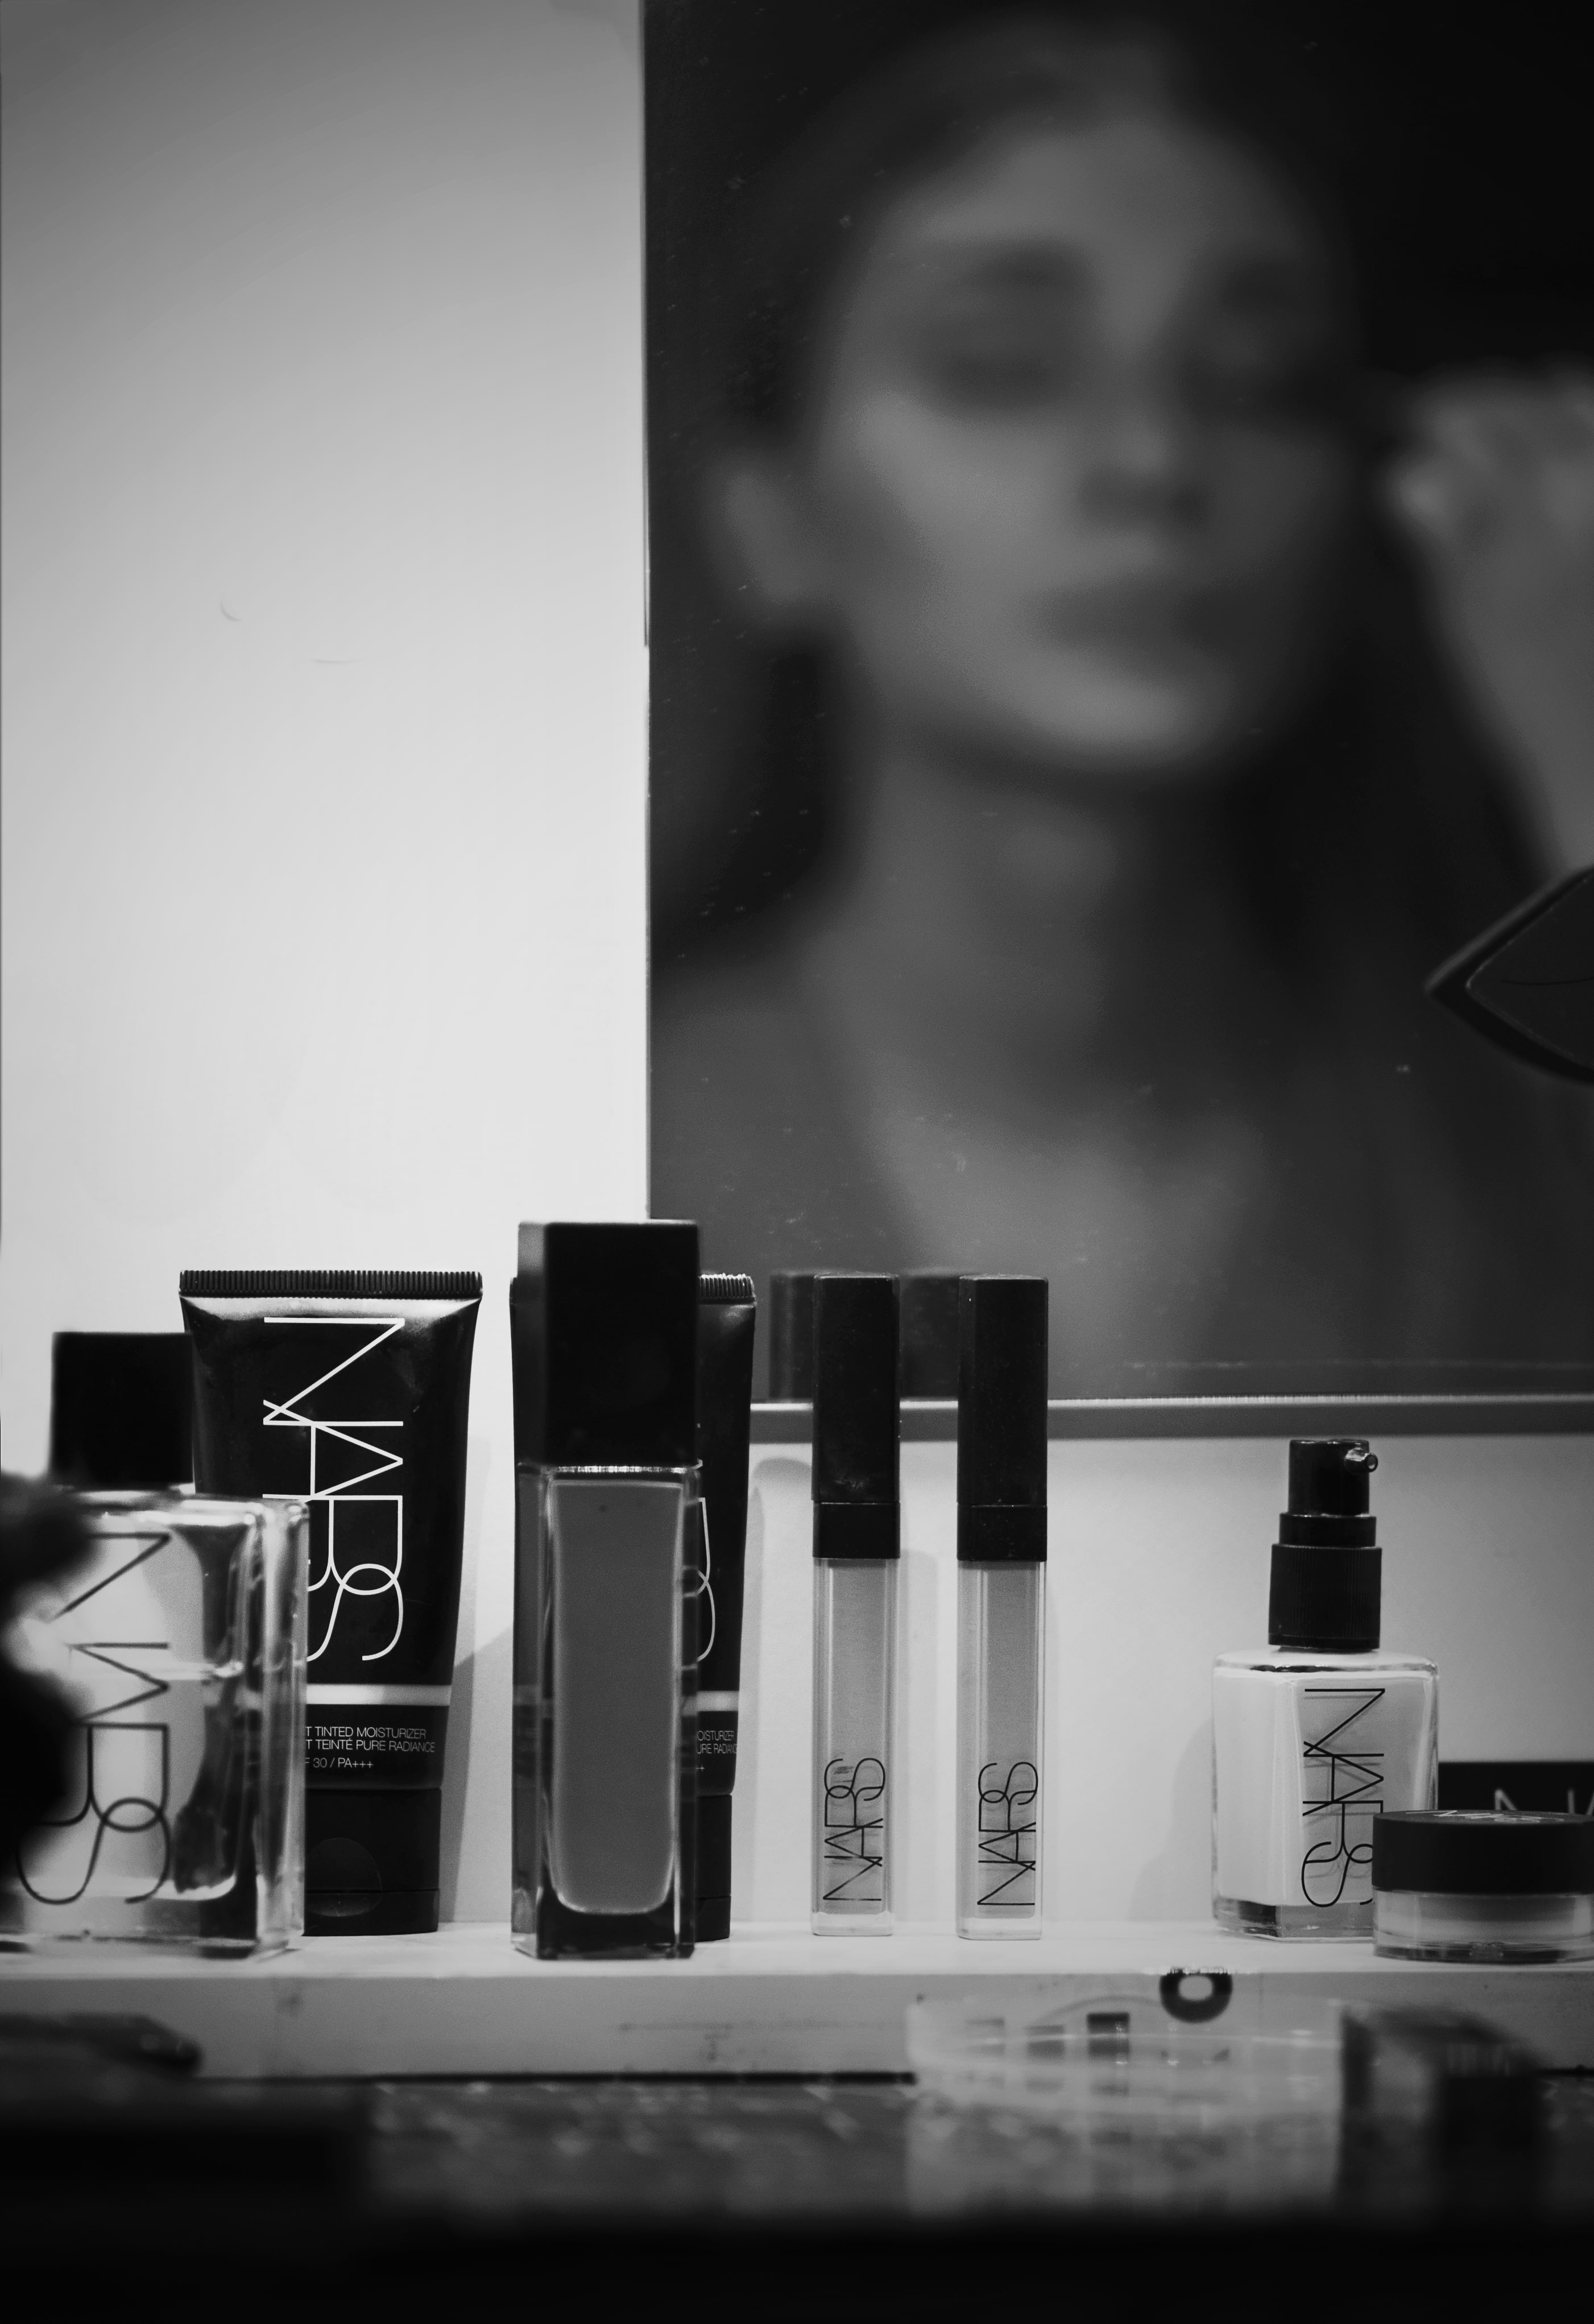 NARS, FASHION WEEK ÖZLEM SÜER DEFİLESİ